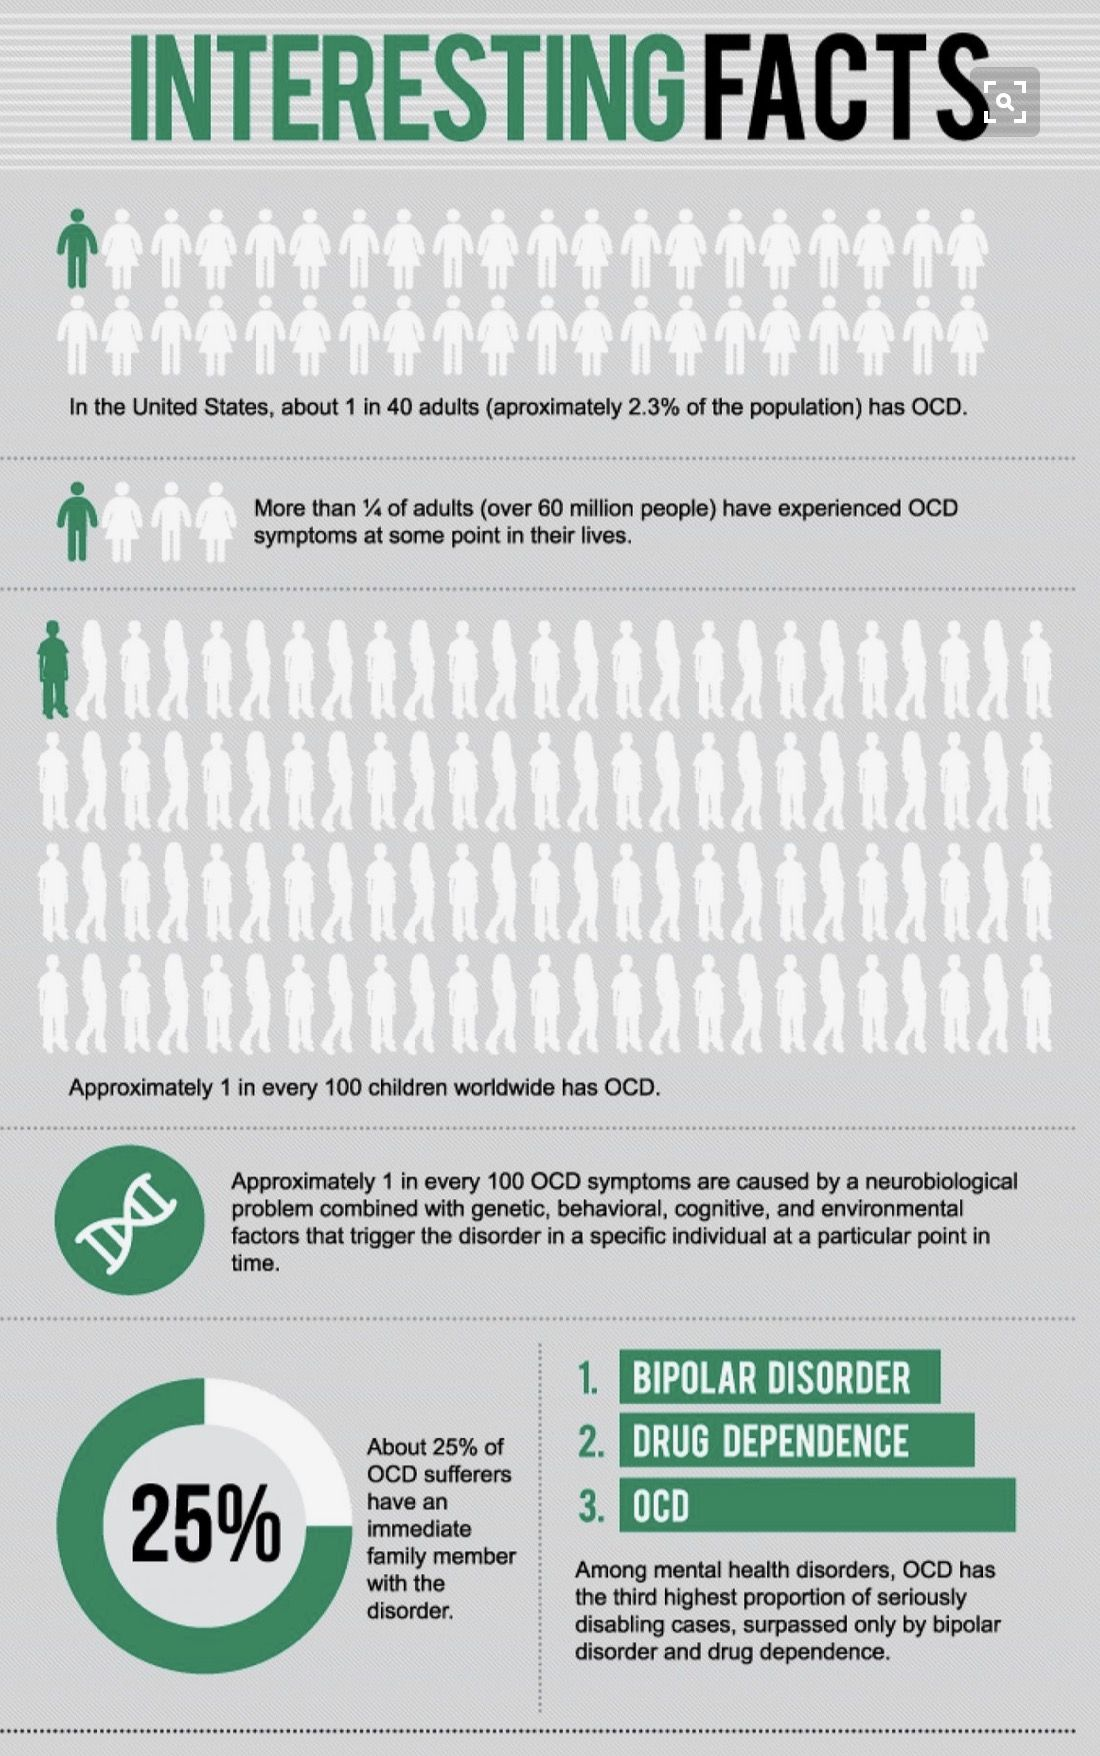 Statistics 1 40 Adults Has Ocd One Out Of 4 People Have